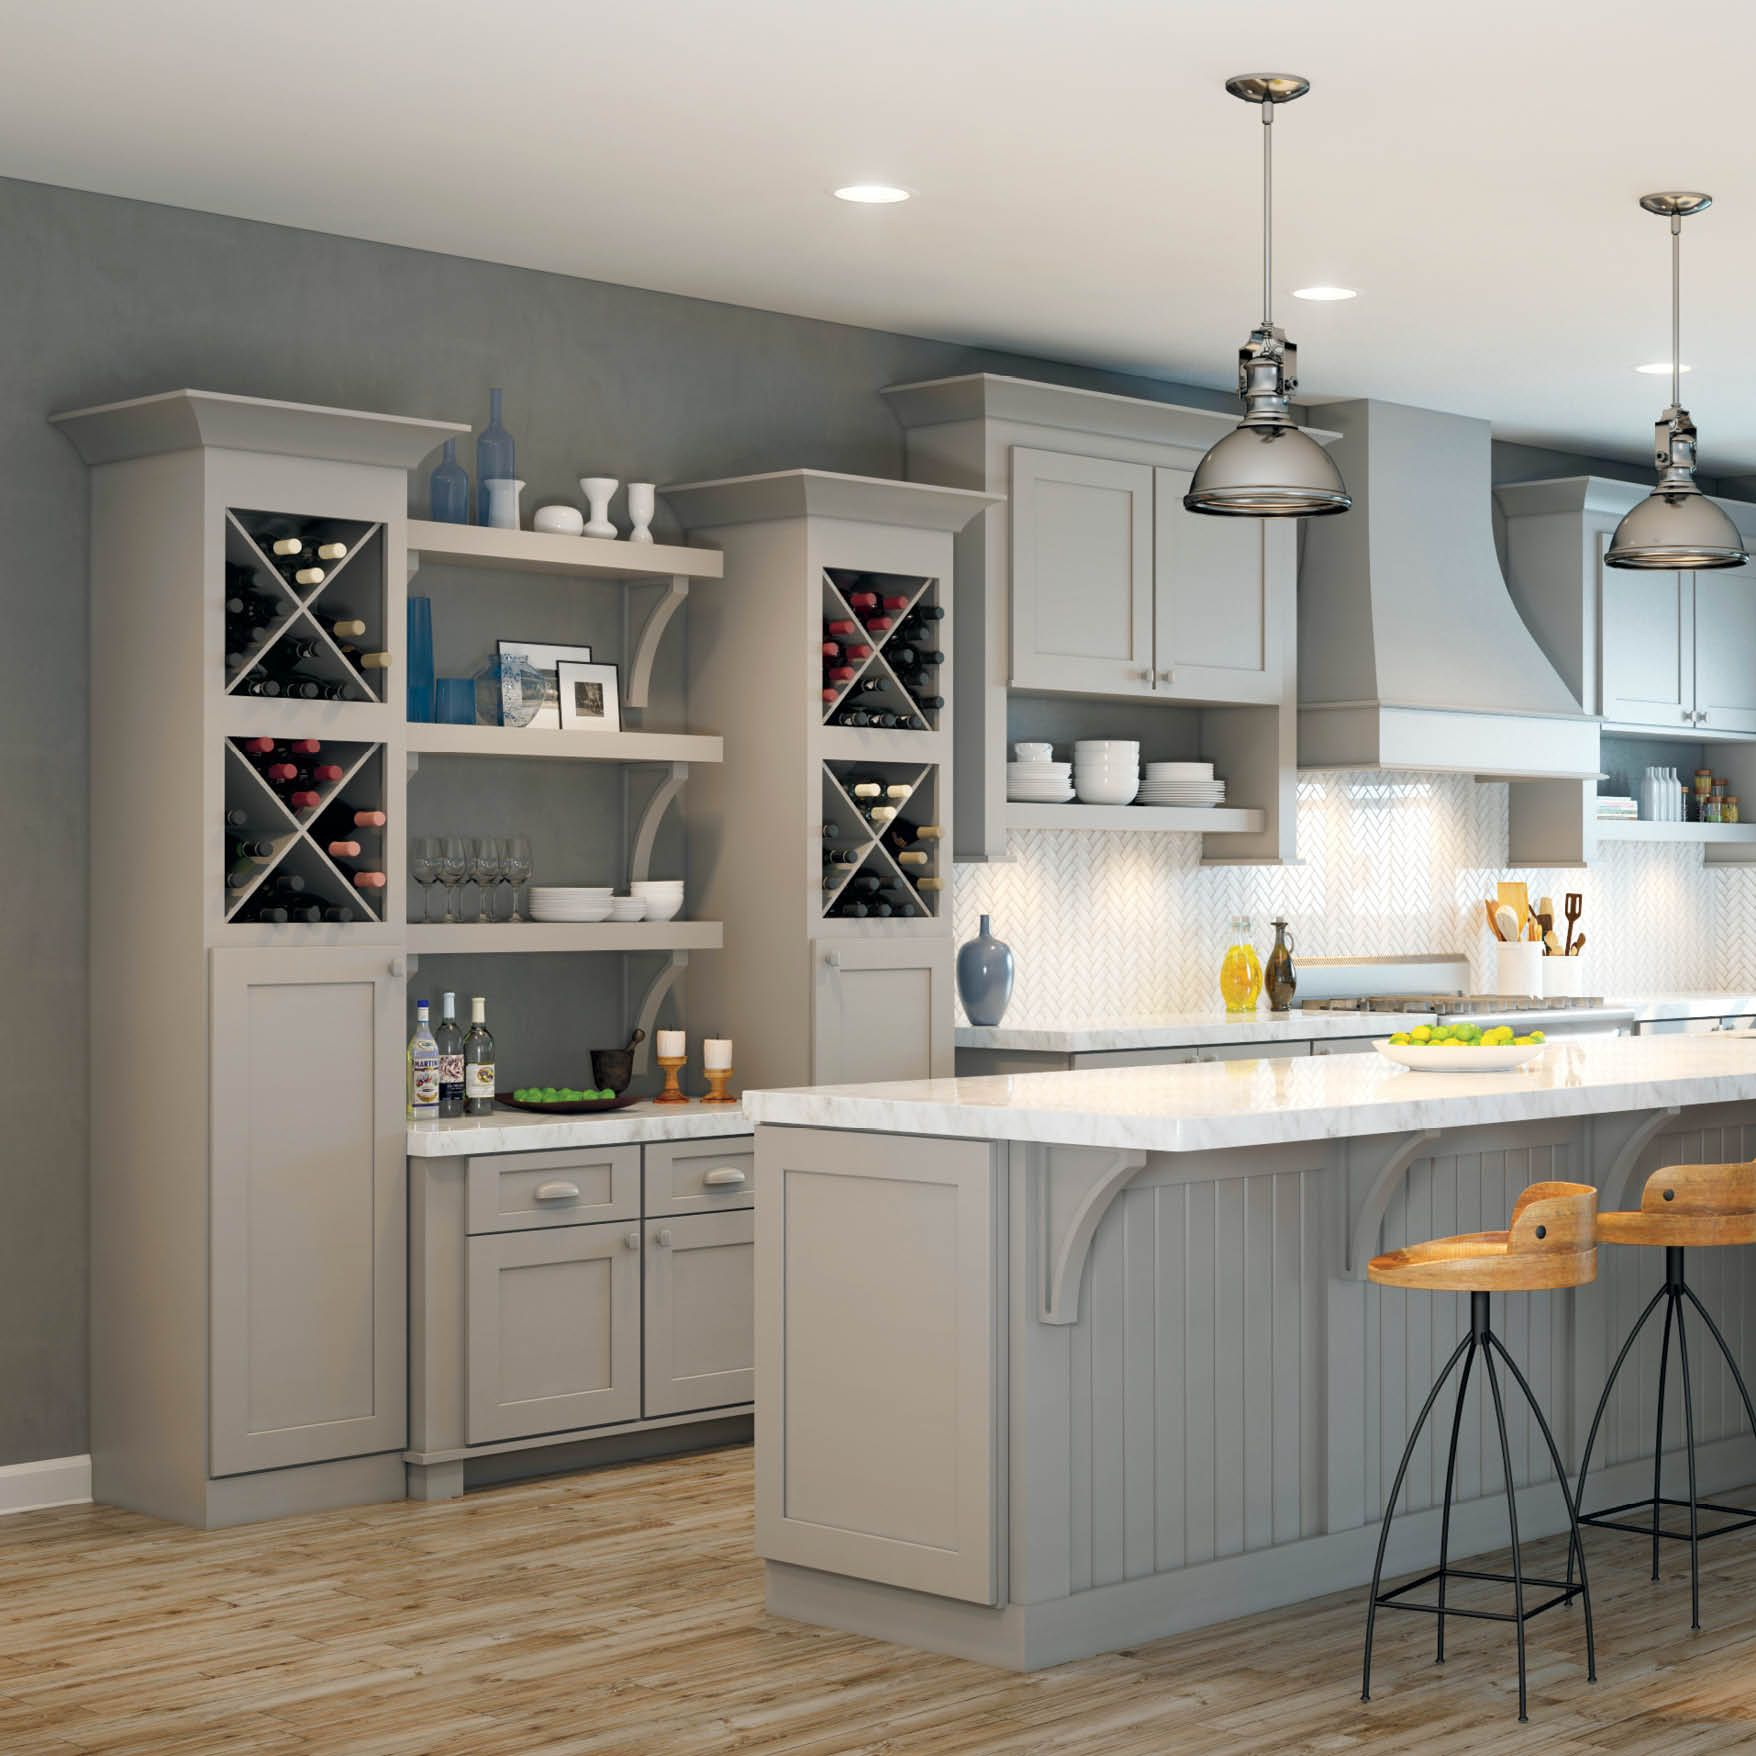 Just Add Friends This Beverage Bar Has All The Bells And Whistles In 650 Painted Stone Waypointlivingspaces Wine Bar Design Cabinet Doors Kitchen Cabinets